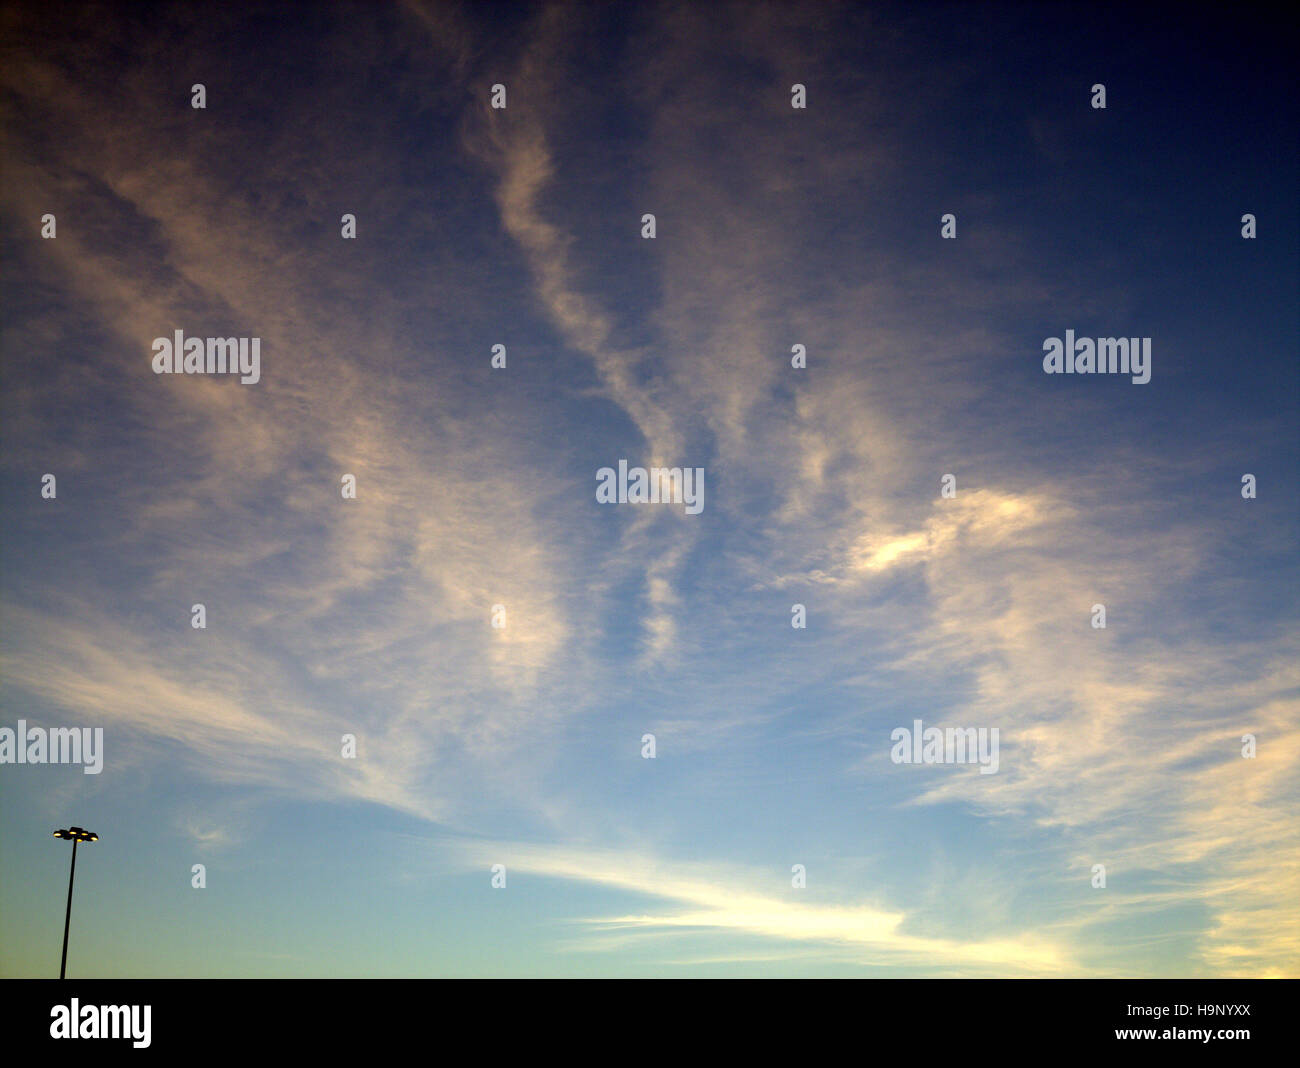 Abstract blue ciel nuage bleu fond Photo Stock